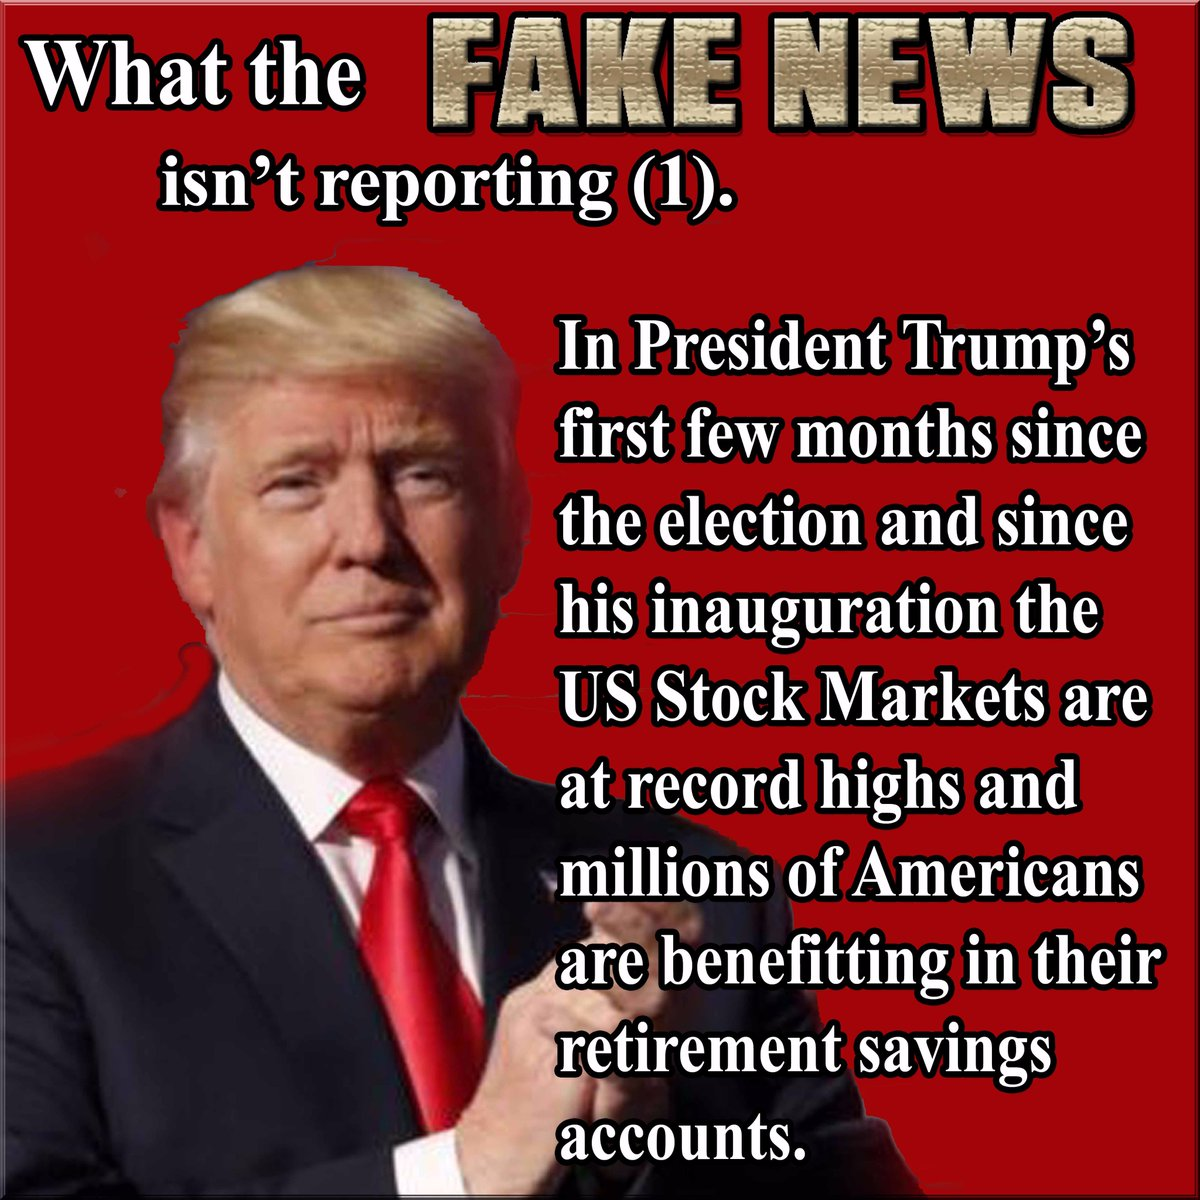 . #WednesdayWisdom #WednesdayMotivation #Trump While #msm obsesses over a conspiracy @potus working hard for #AmericaFirst #WakeUpAmerica<br>http://pic.twitter.com/WWsxqGgPmN